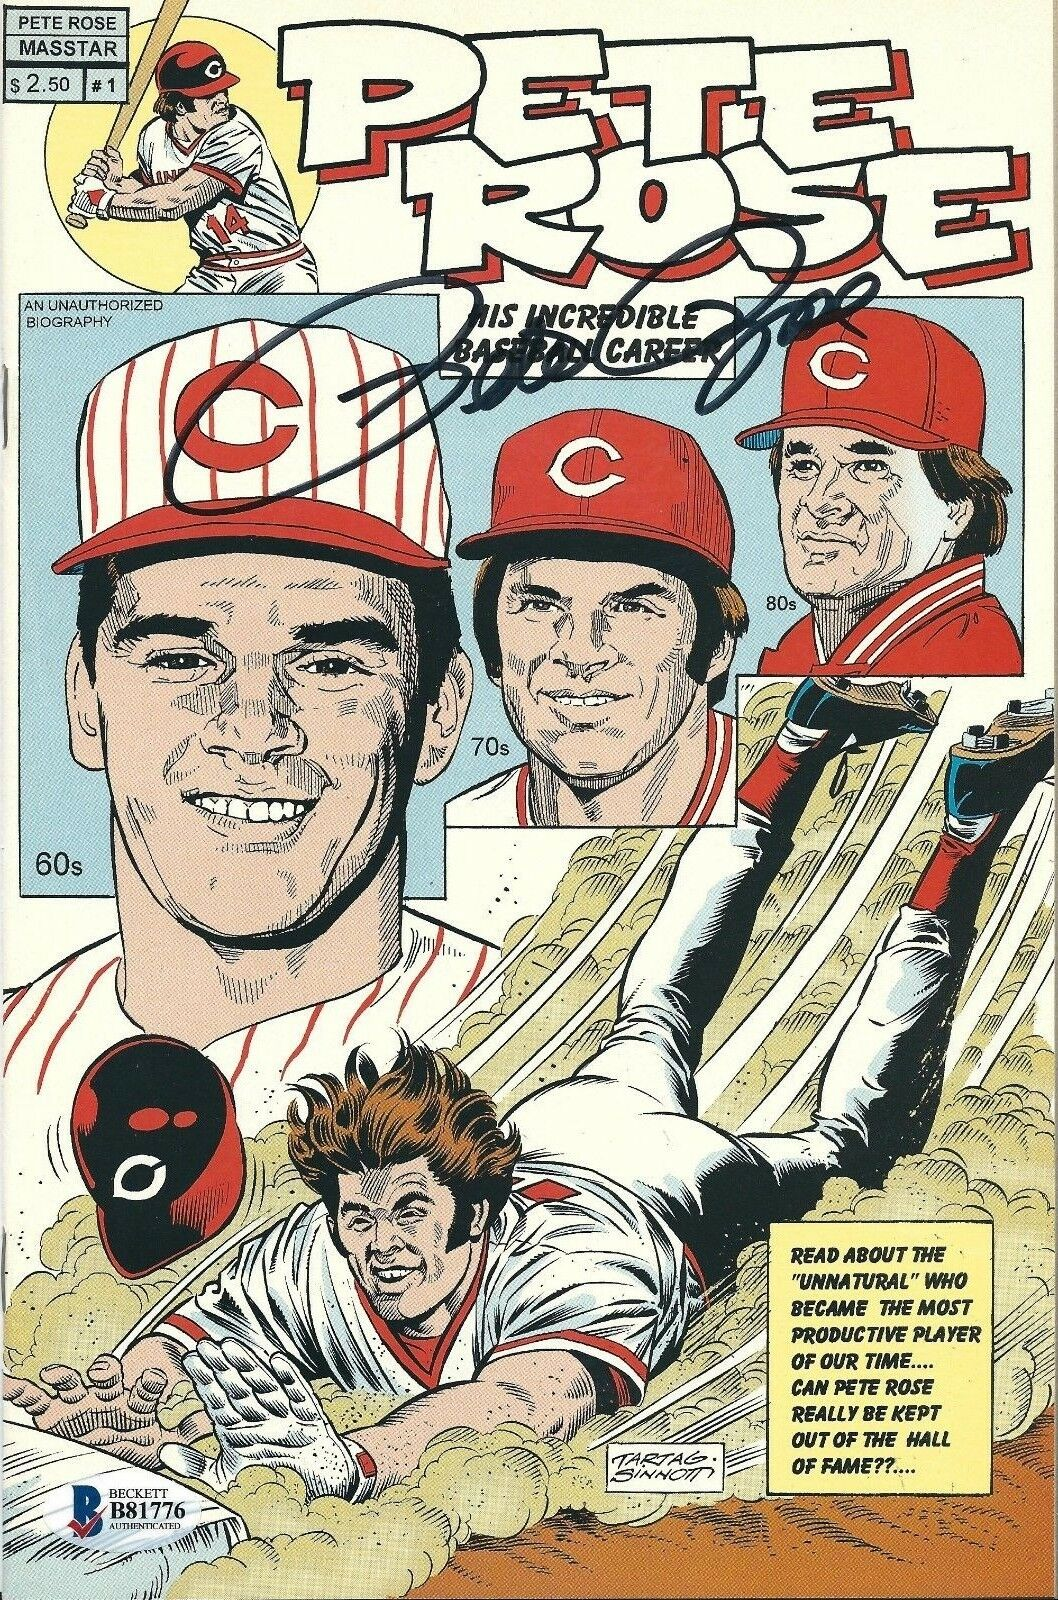 Pete Rose Signed Cincinnati Reds Baseball Comic Book Beckett B81776